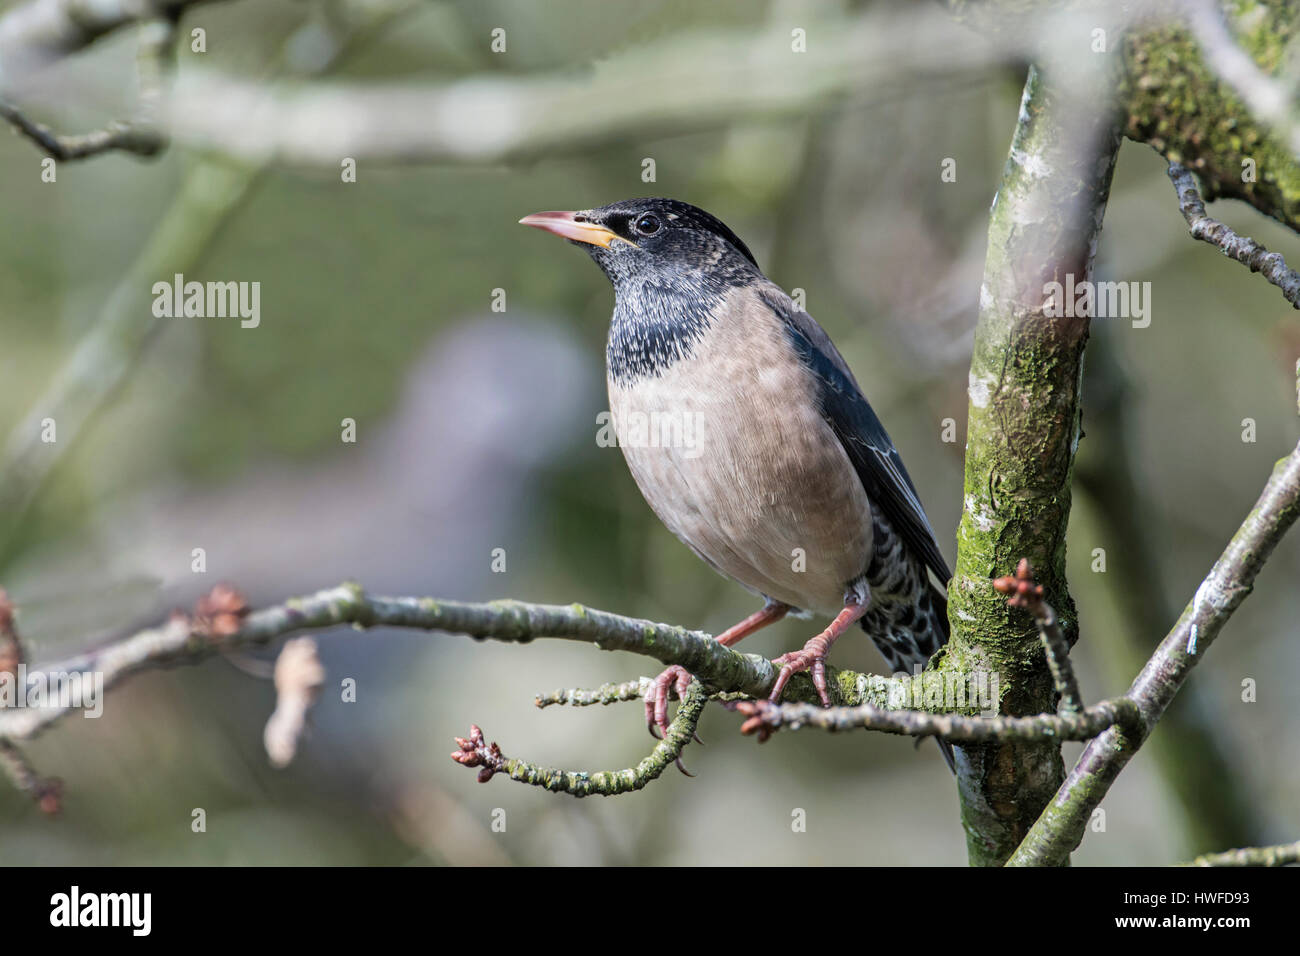 Rose-coloured starling (Sturnus roseus), Rare in the UK, this is the long-staying bird at Crawley, West Sussex, - Stock Image